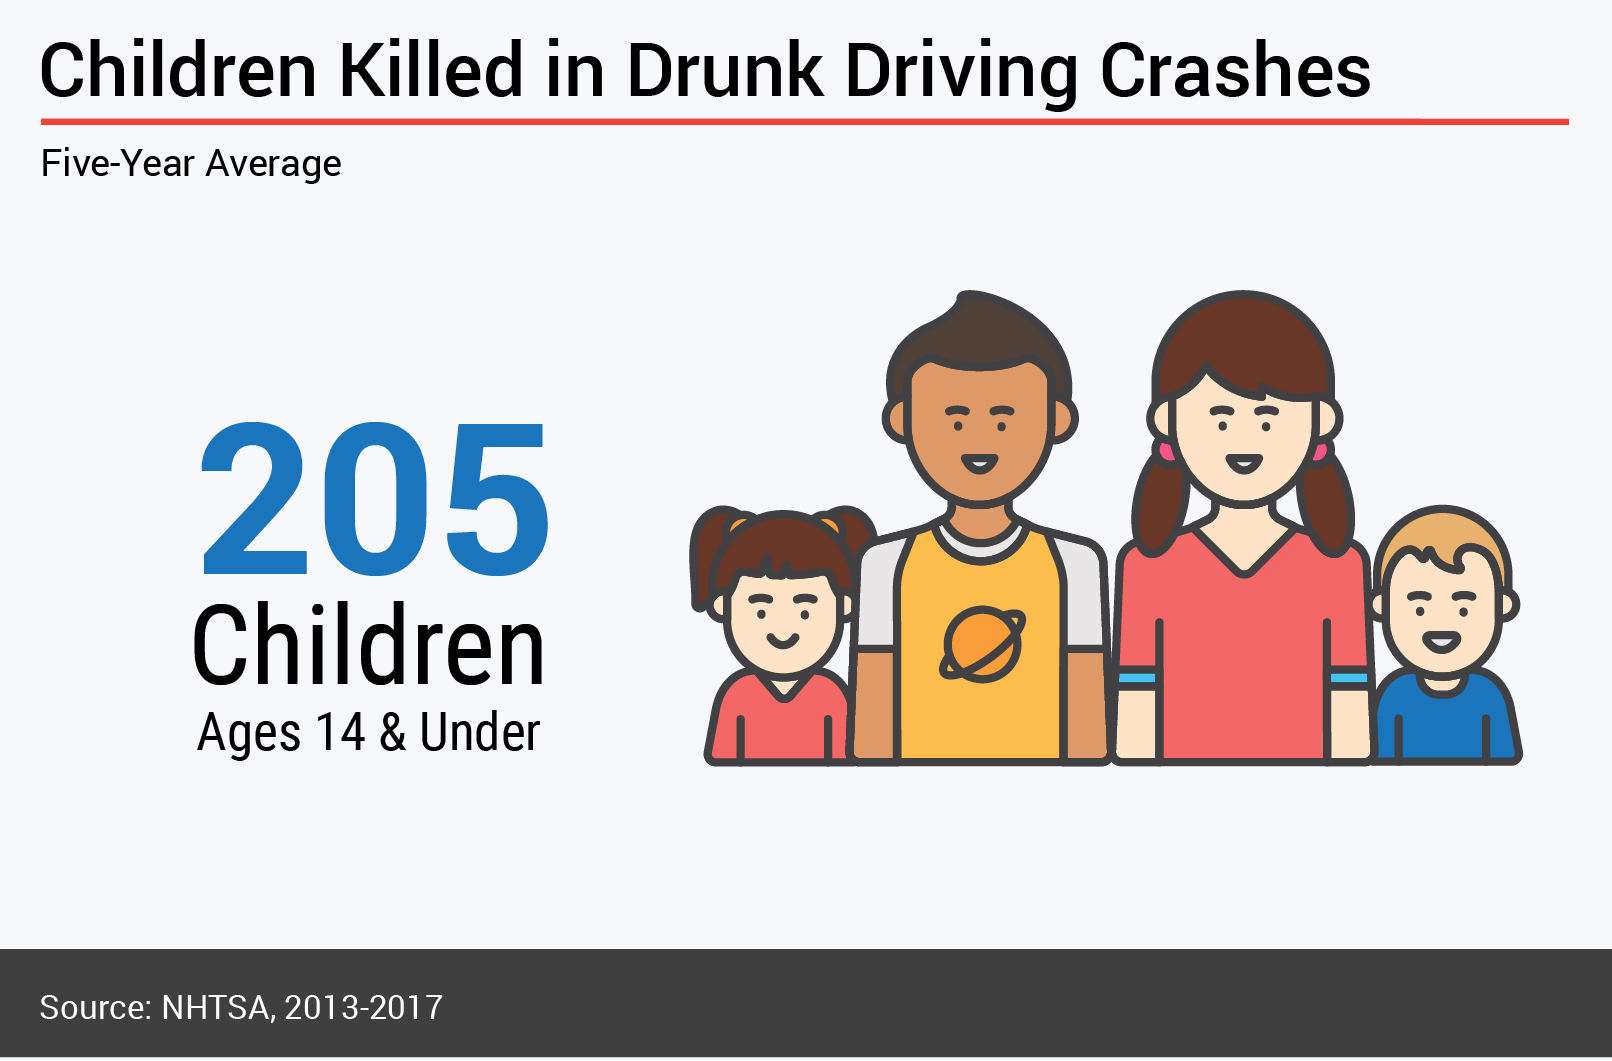 Drunk Driving Study - Fatalities for Children 14 and under